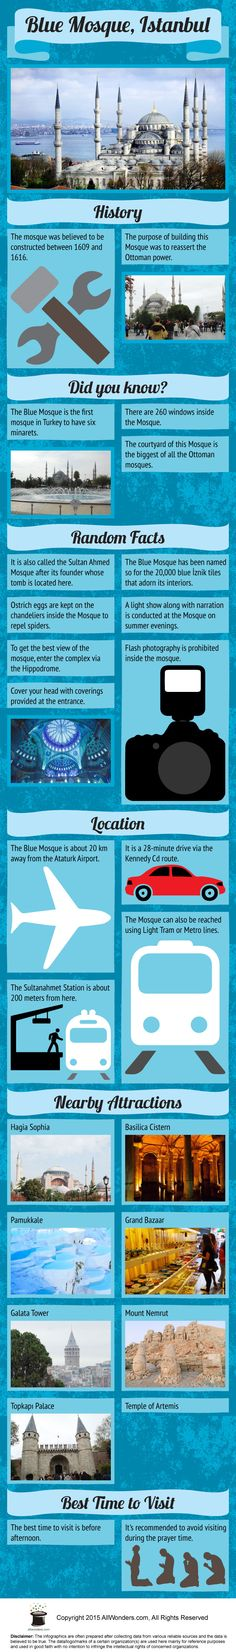 116 Best Travel Infographics - Where to go and why! images